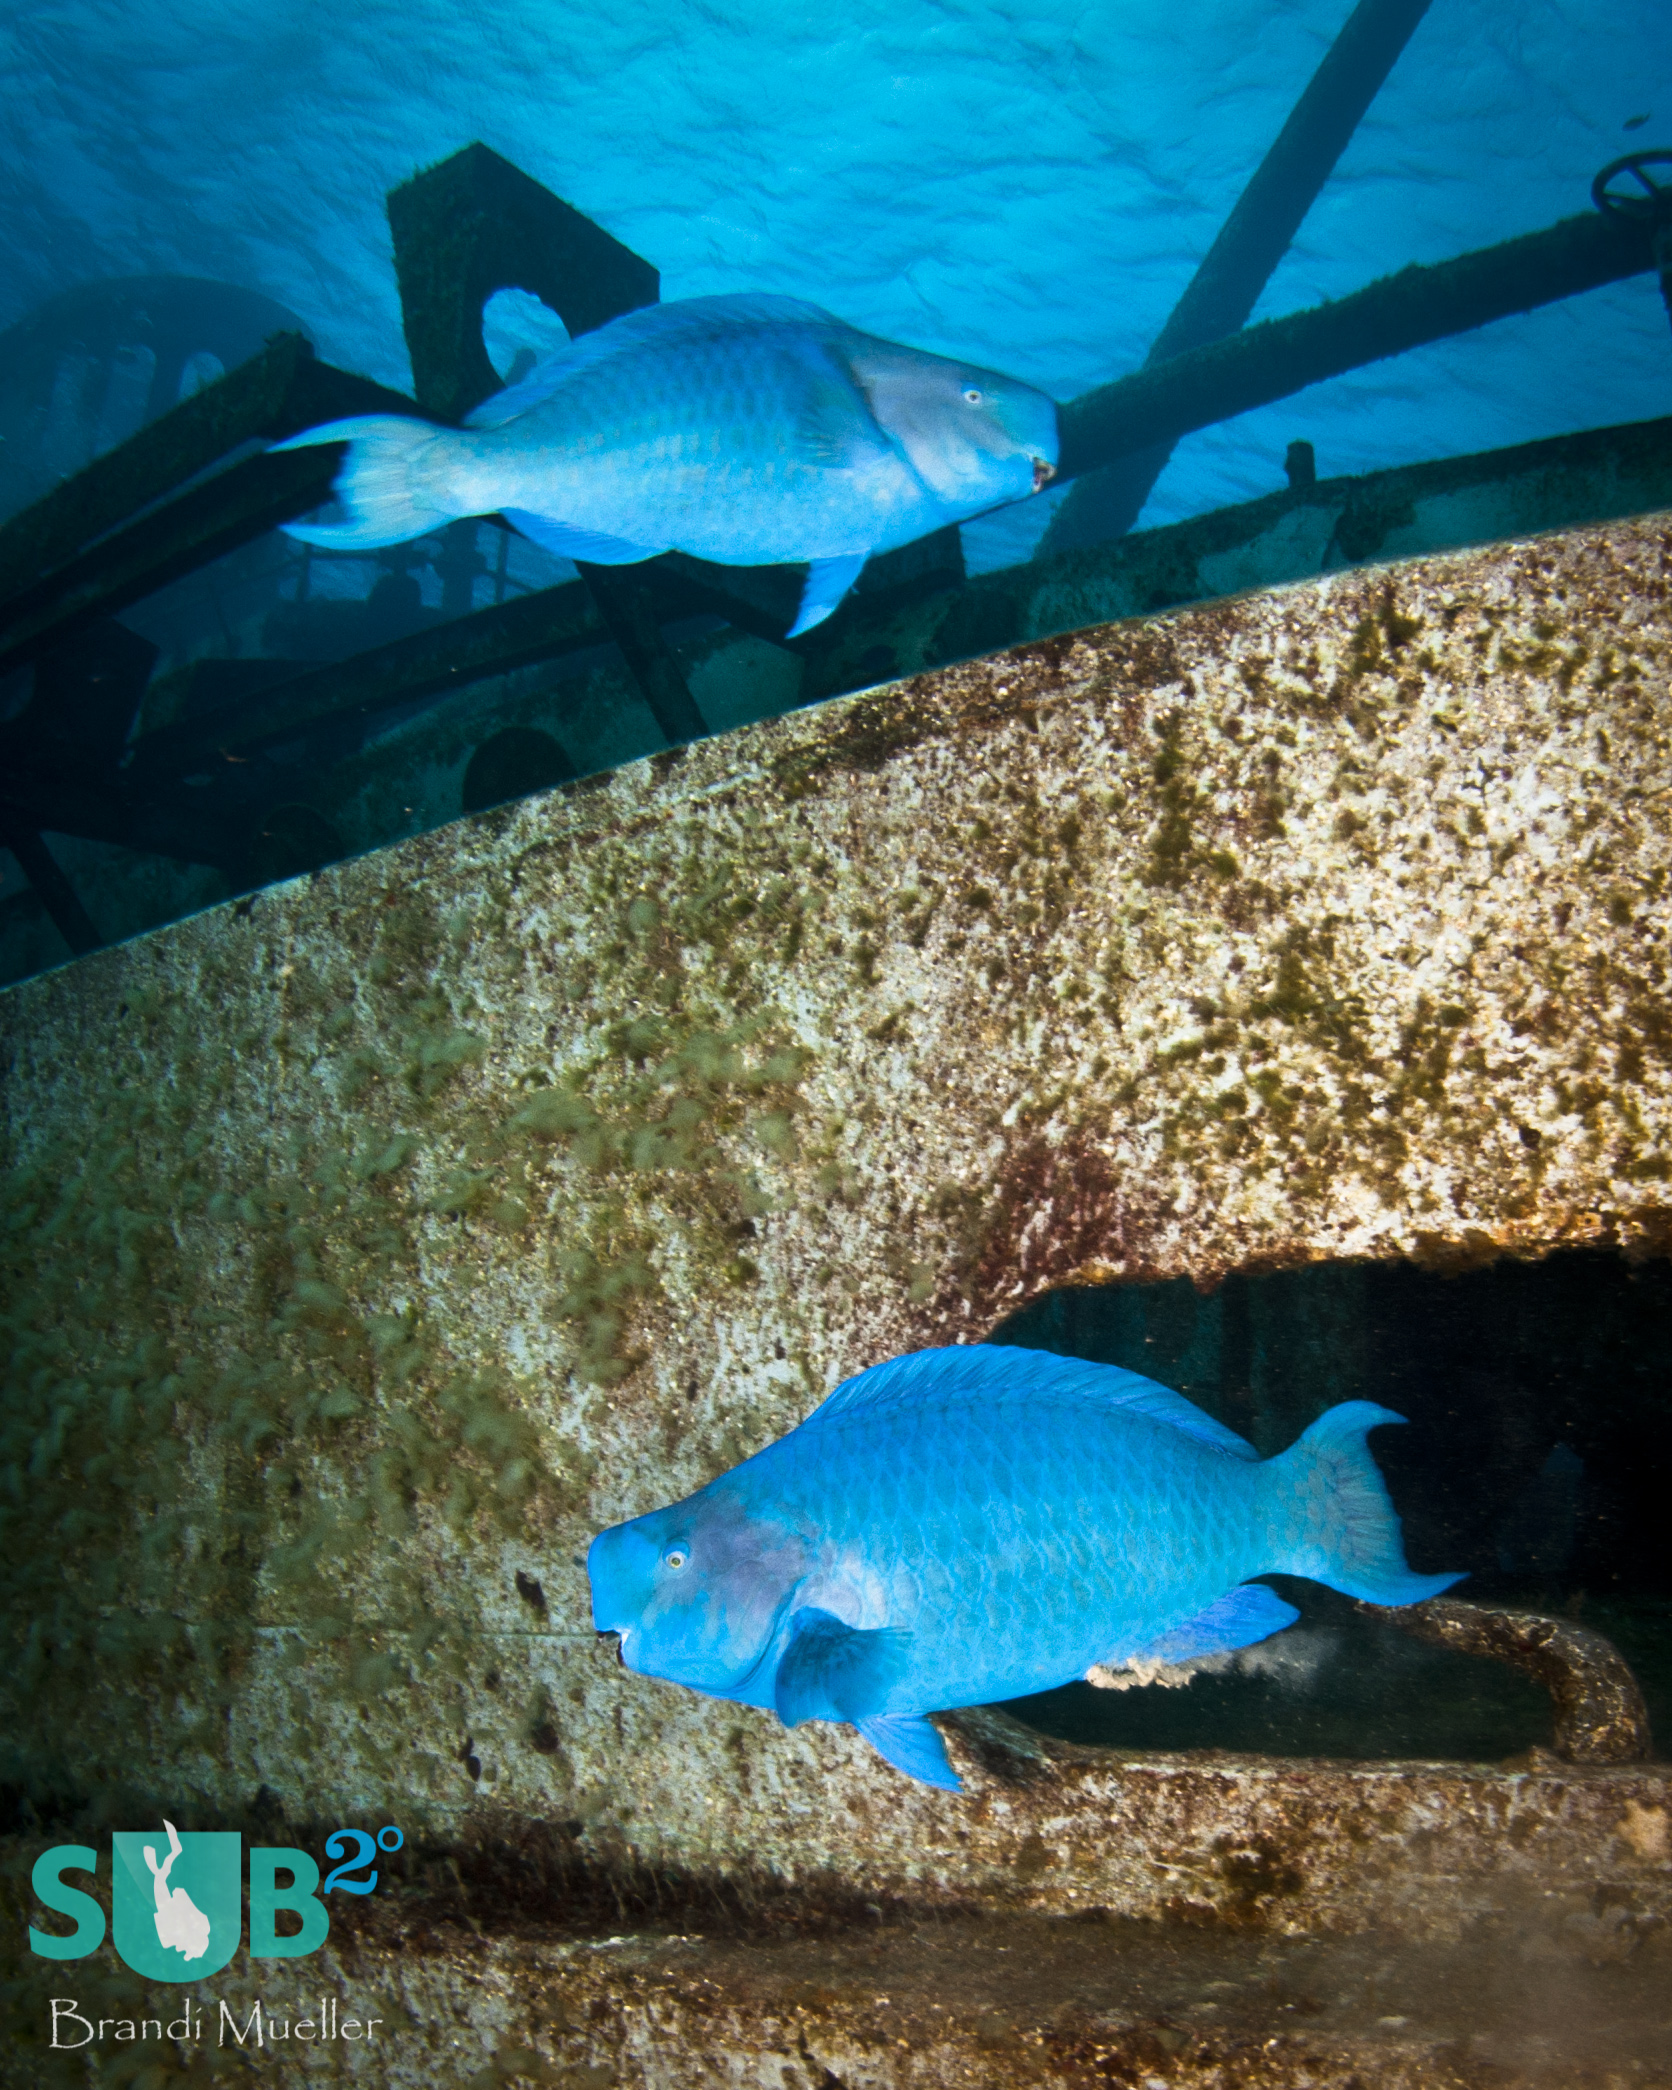 Two bright blue parrotfish cruise the deck of the USS Kittiwake, an artifically sunk wreck in the Cayman Islands.